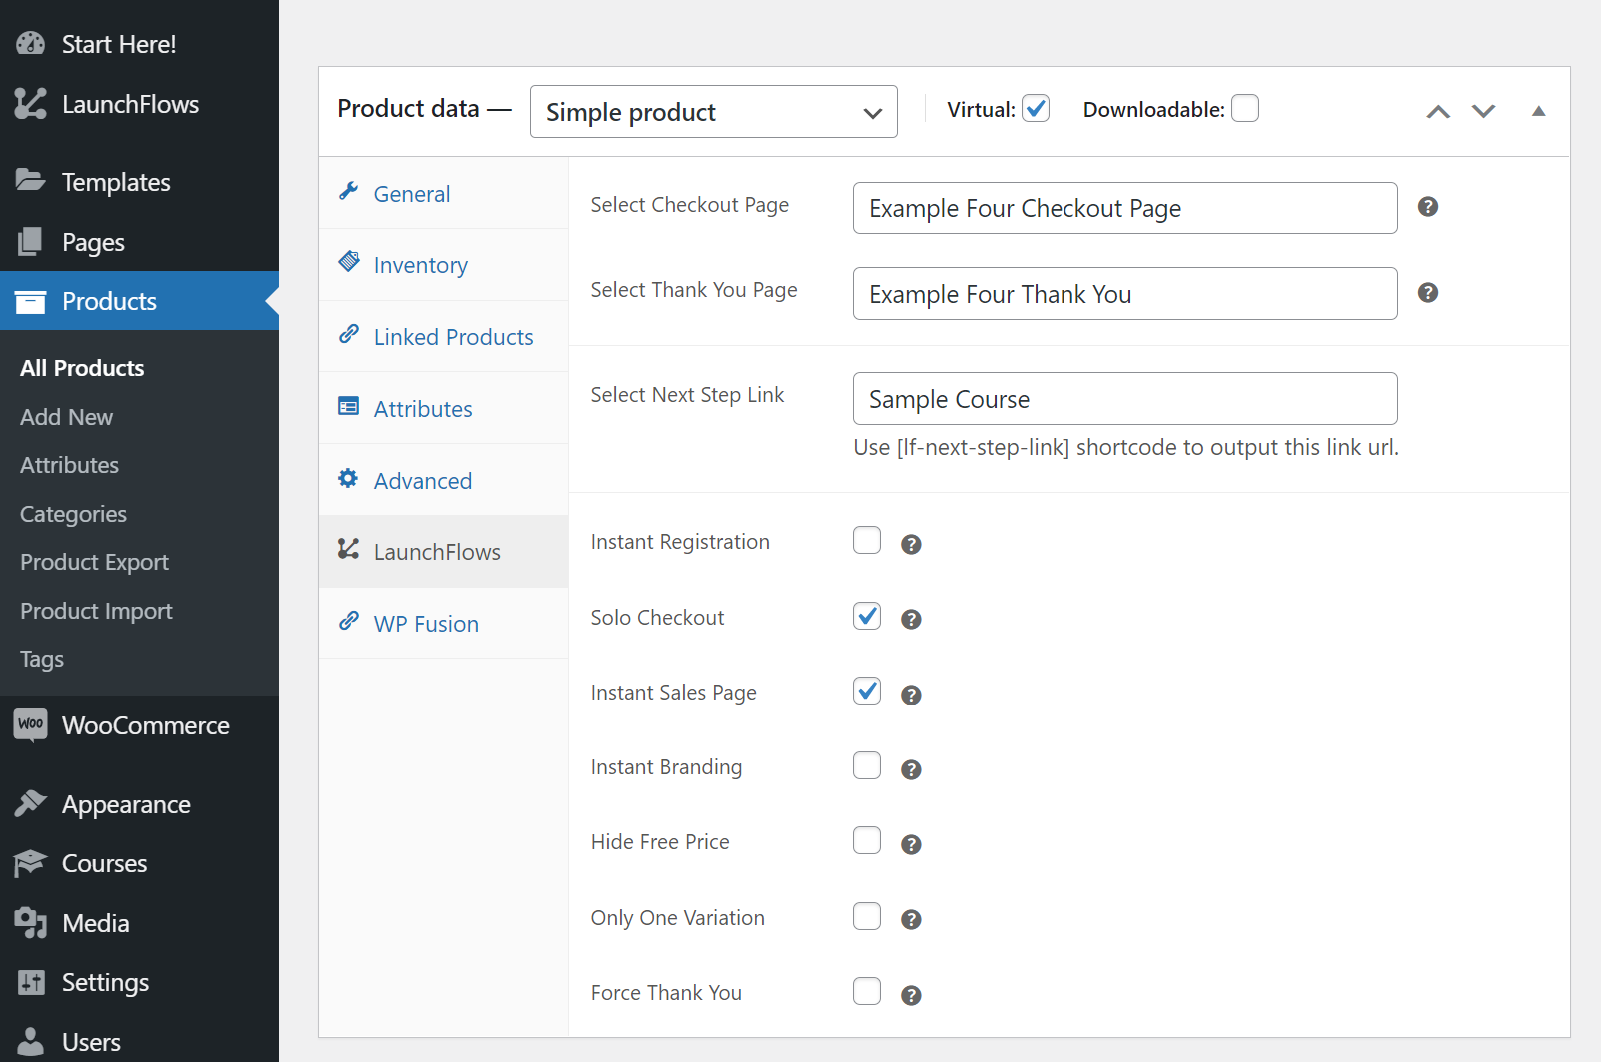 LaunchFlows - WooCommerce Product